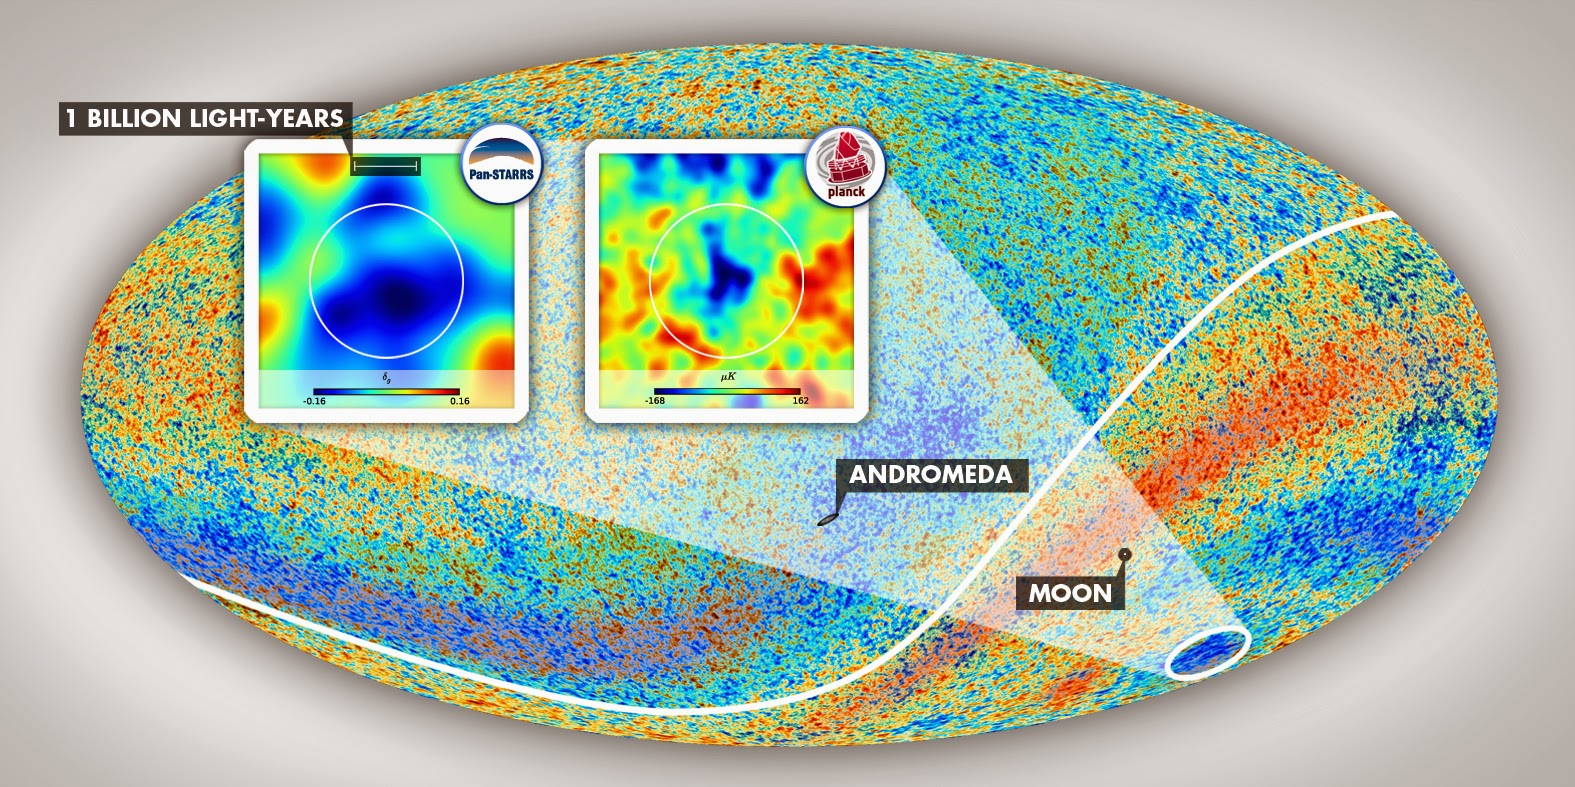 The Cold Spot area resides in the constellation Eridanus in the southern galactic hemisphere. The insets show the environment of this anomalous patch of the sky as mapped by Szapudi's team using PS1 and WISE data and as observed in the cosmic microwave background temperature data taken by the Planck satellite. The angular diameter of the vast supervoid aligned with the Cold Spot, which exceeds 30 degrees, is marked by the white circles. Graphics by Gergő Kránicz. Image credit: ESA Planck Collaboration.